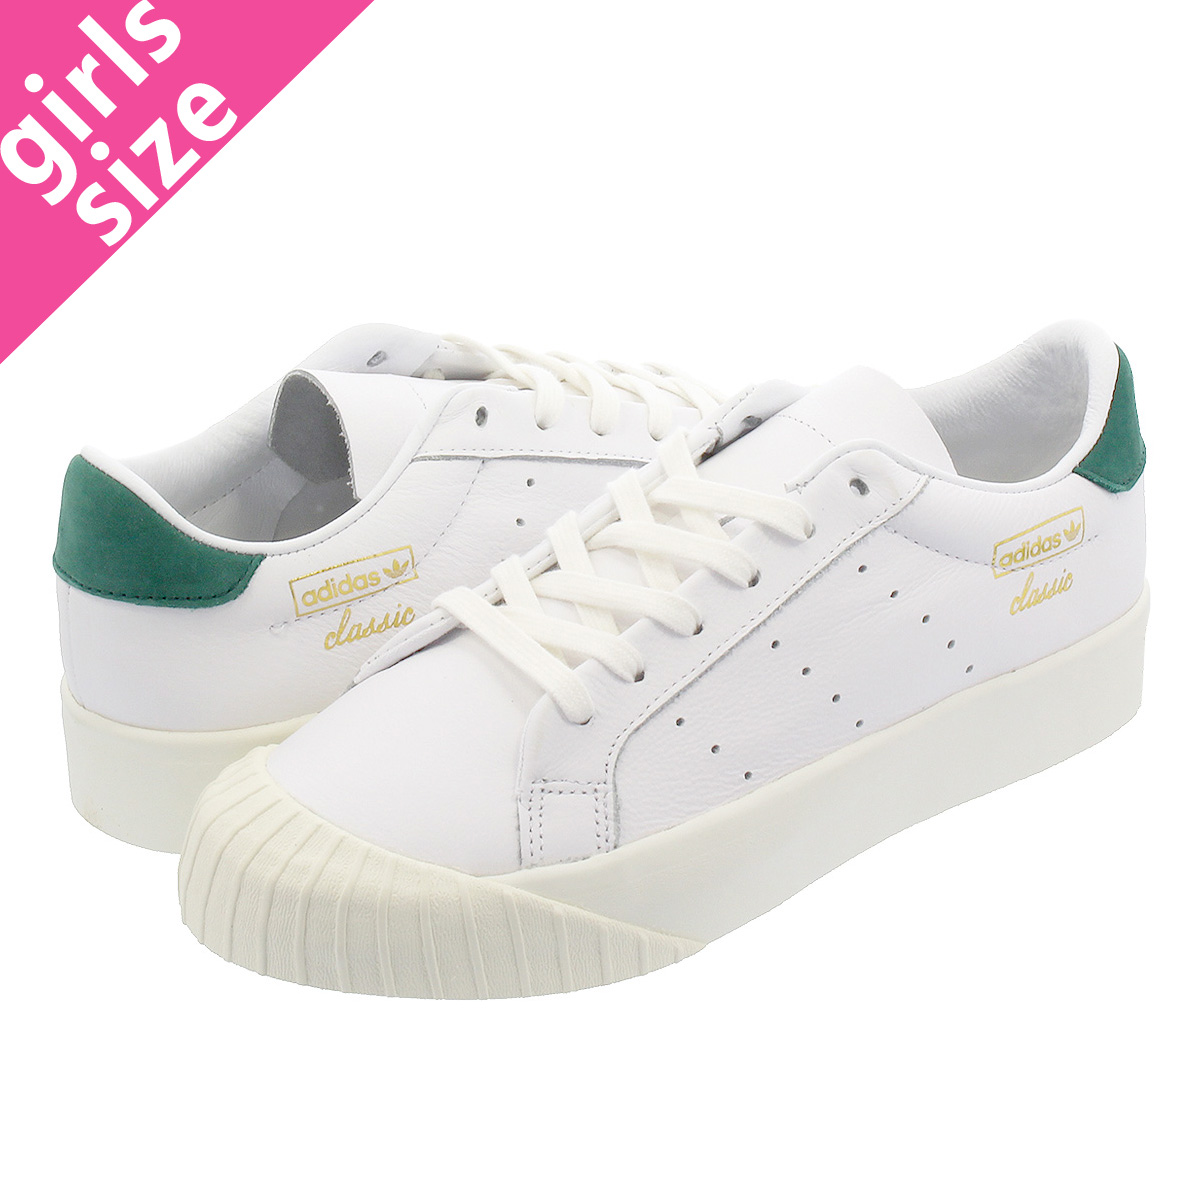 finest selection 093e9 a0bf6 SELECT SHOP LOWTEX adidas EVERYN W Adidas Ebb phosphorus women RUNNING  WHITERUNNING WHITECOLLEGIATE GREEN cg6076  Rakuten Global Market